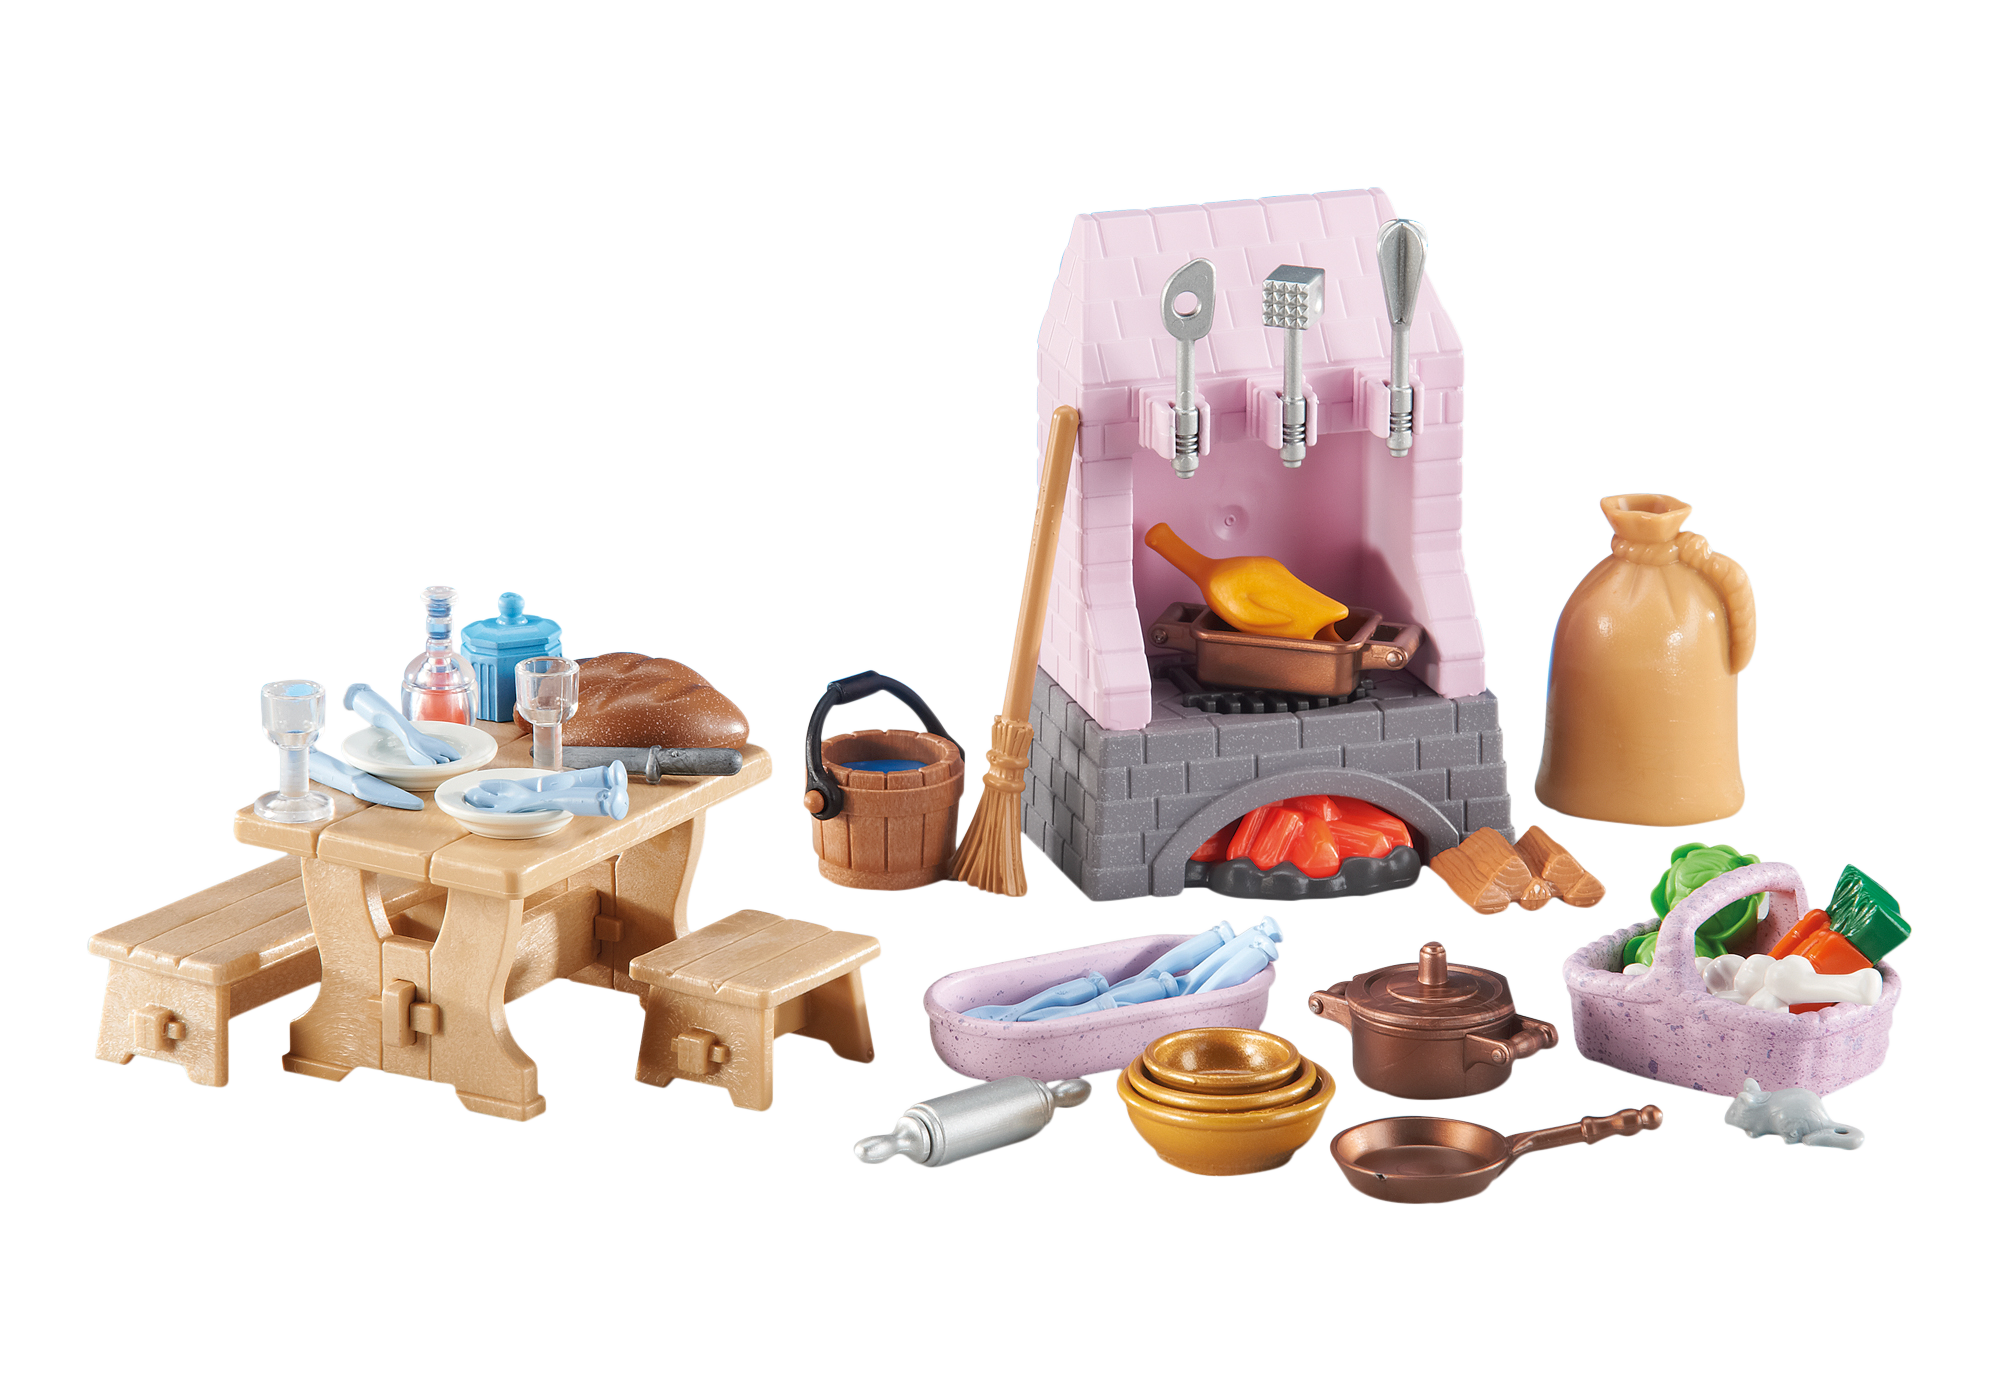 http://media.playmobil.com/i/playmobil/6521_product_detail/Βασιλική κουζίνα